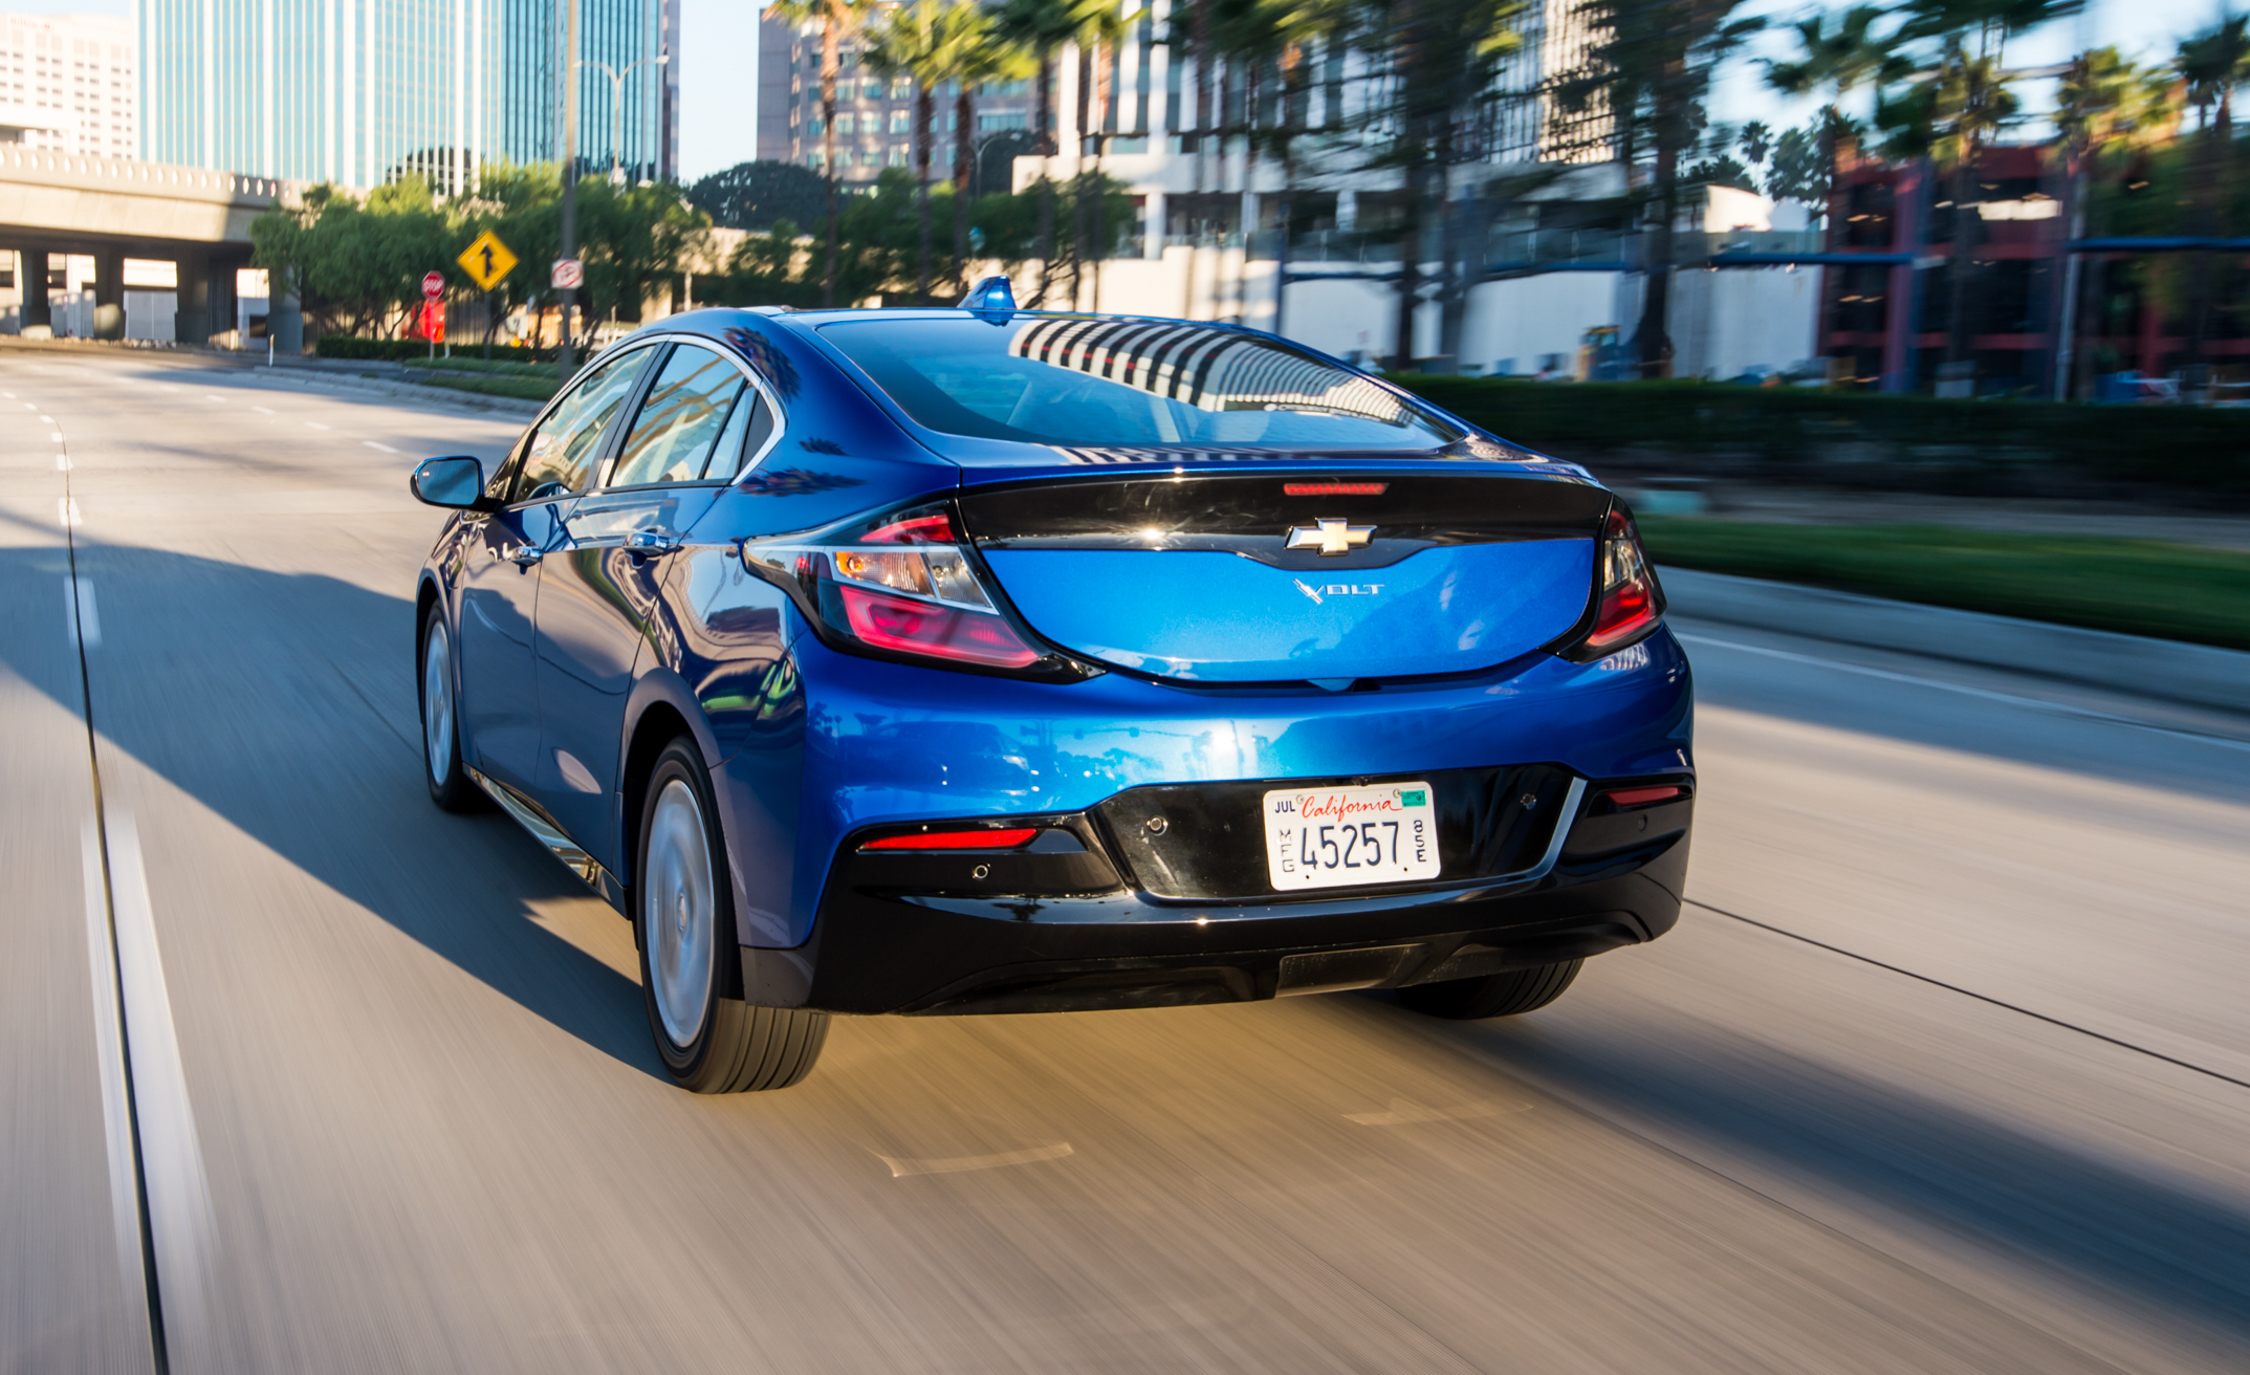 2017 Chevrolet Volt Test Drive Rear View (View 2 of 16)